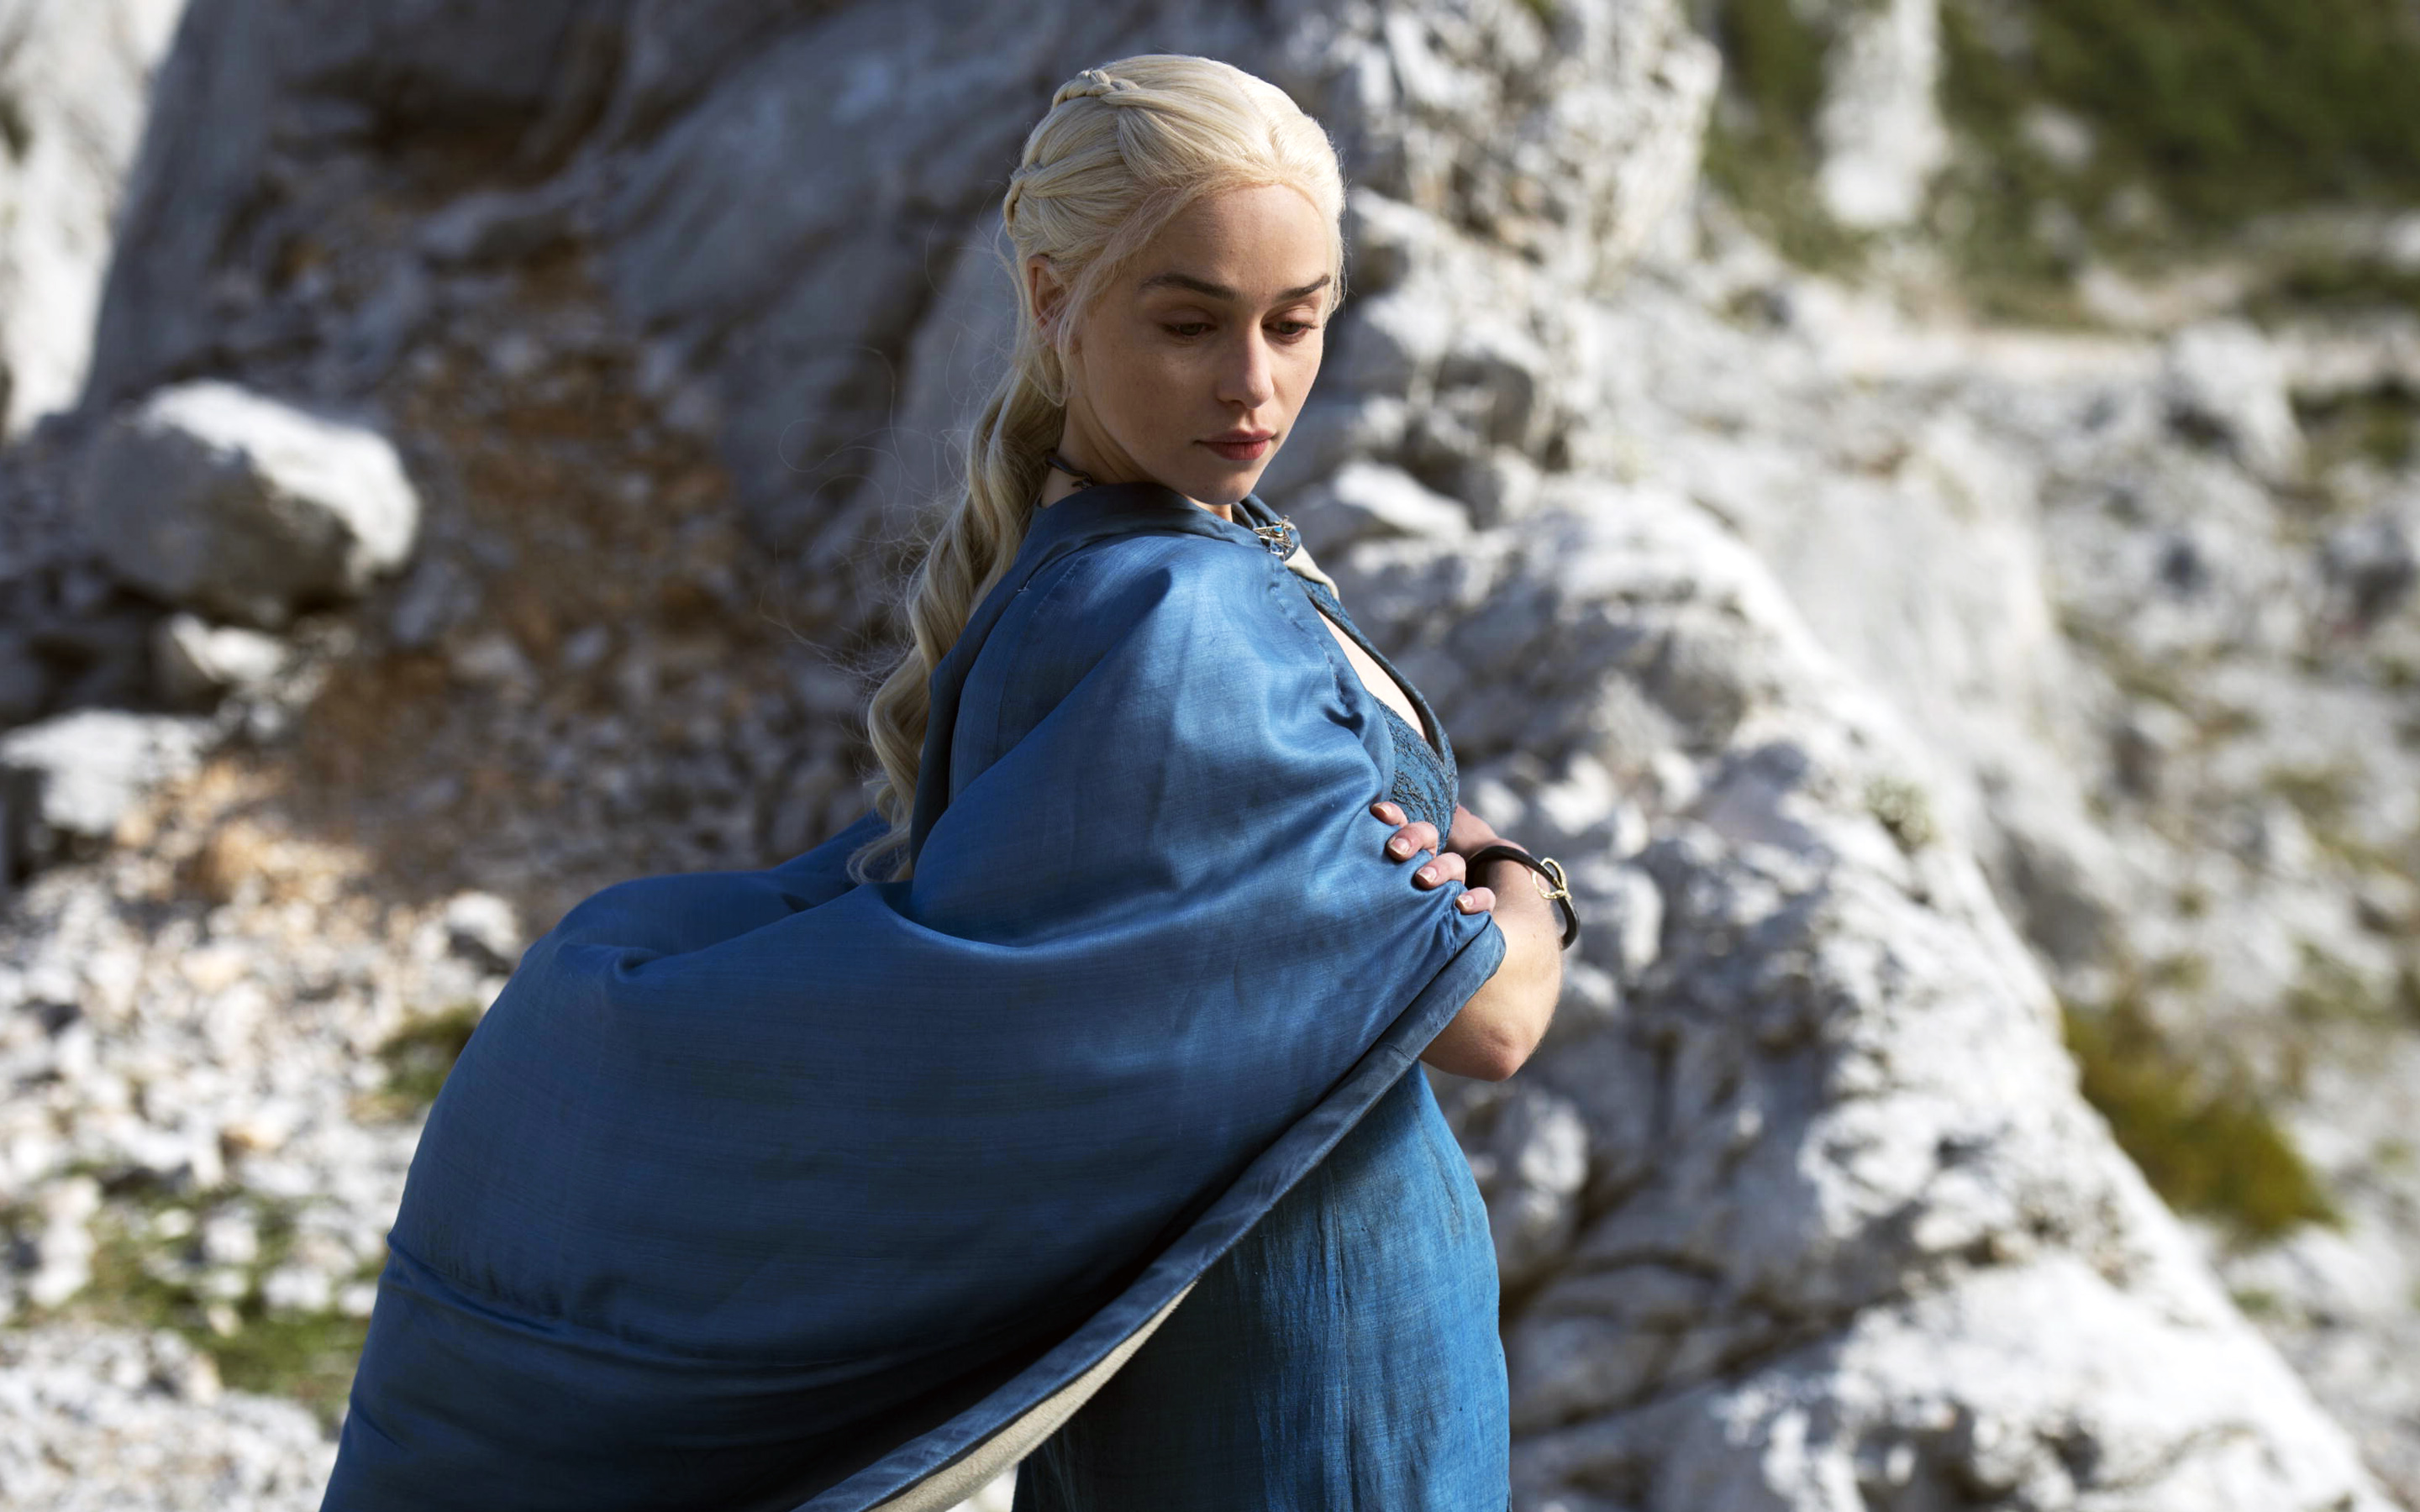 Daenerys Targaryen in Game of Thrones 2977.14 Kb